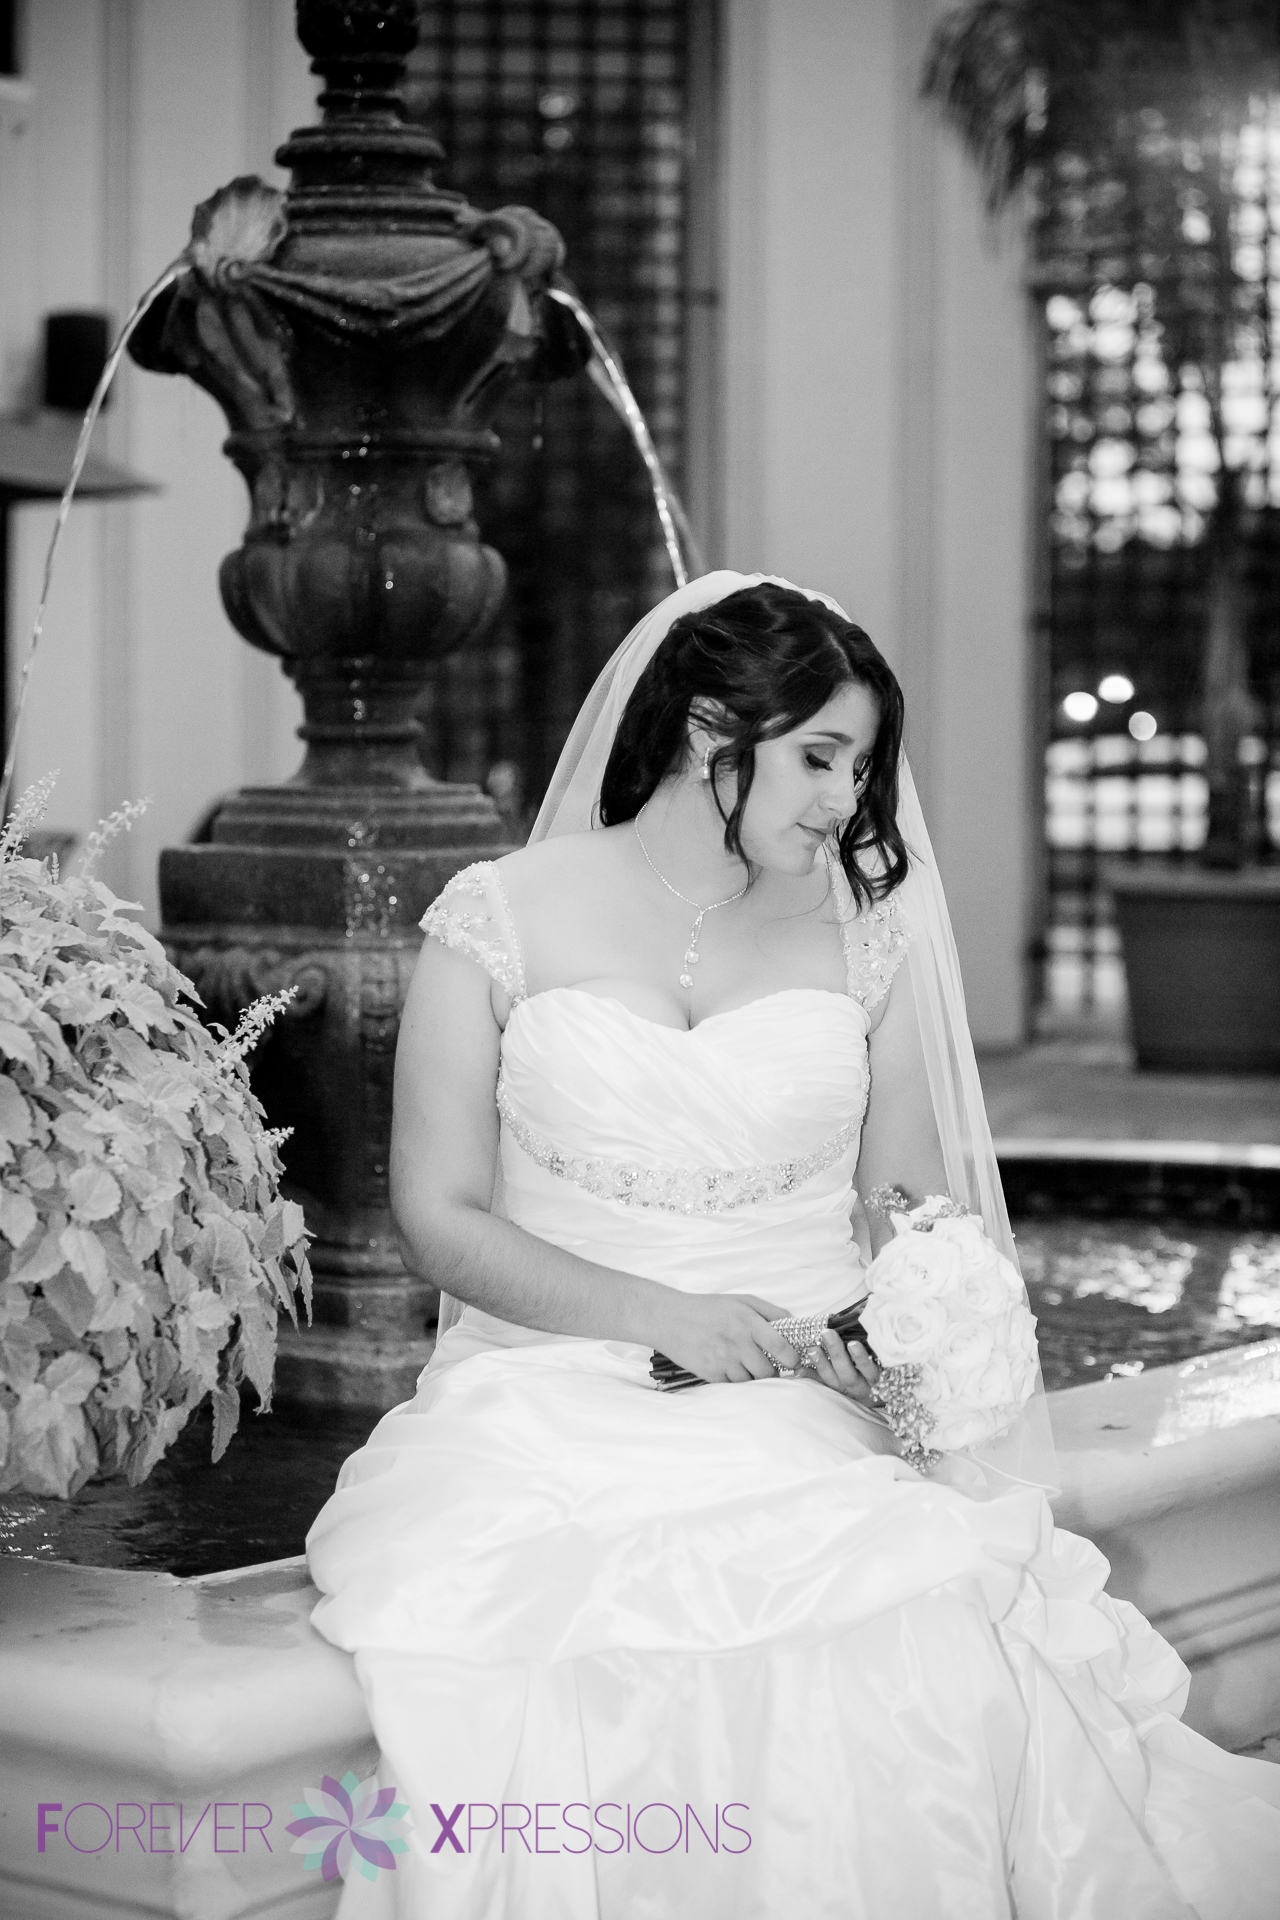 Forever_Xpressions_Wedding_Photography_Monteverde_Bella_Collina-0535